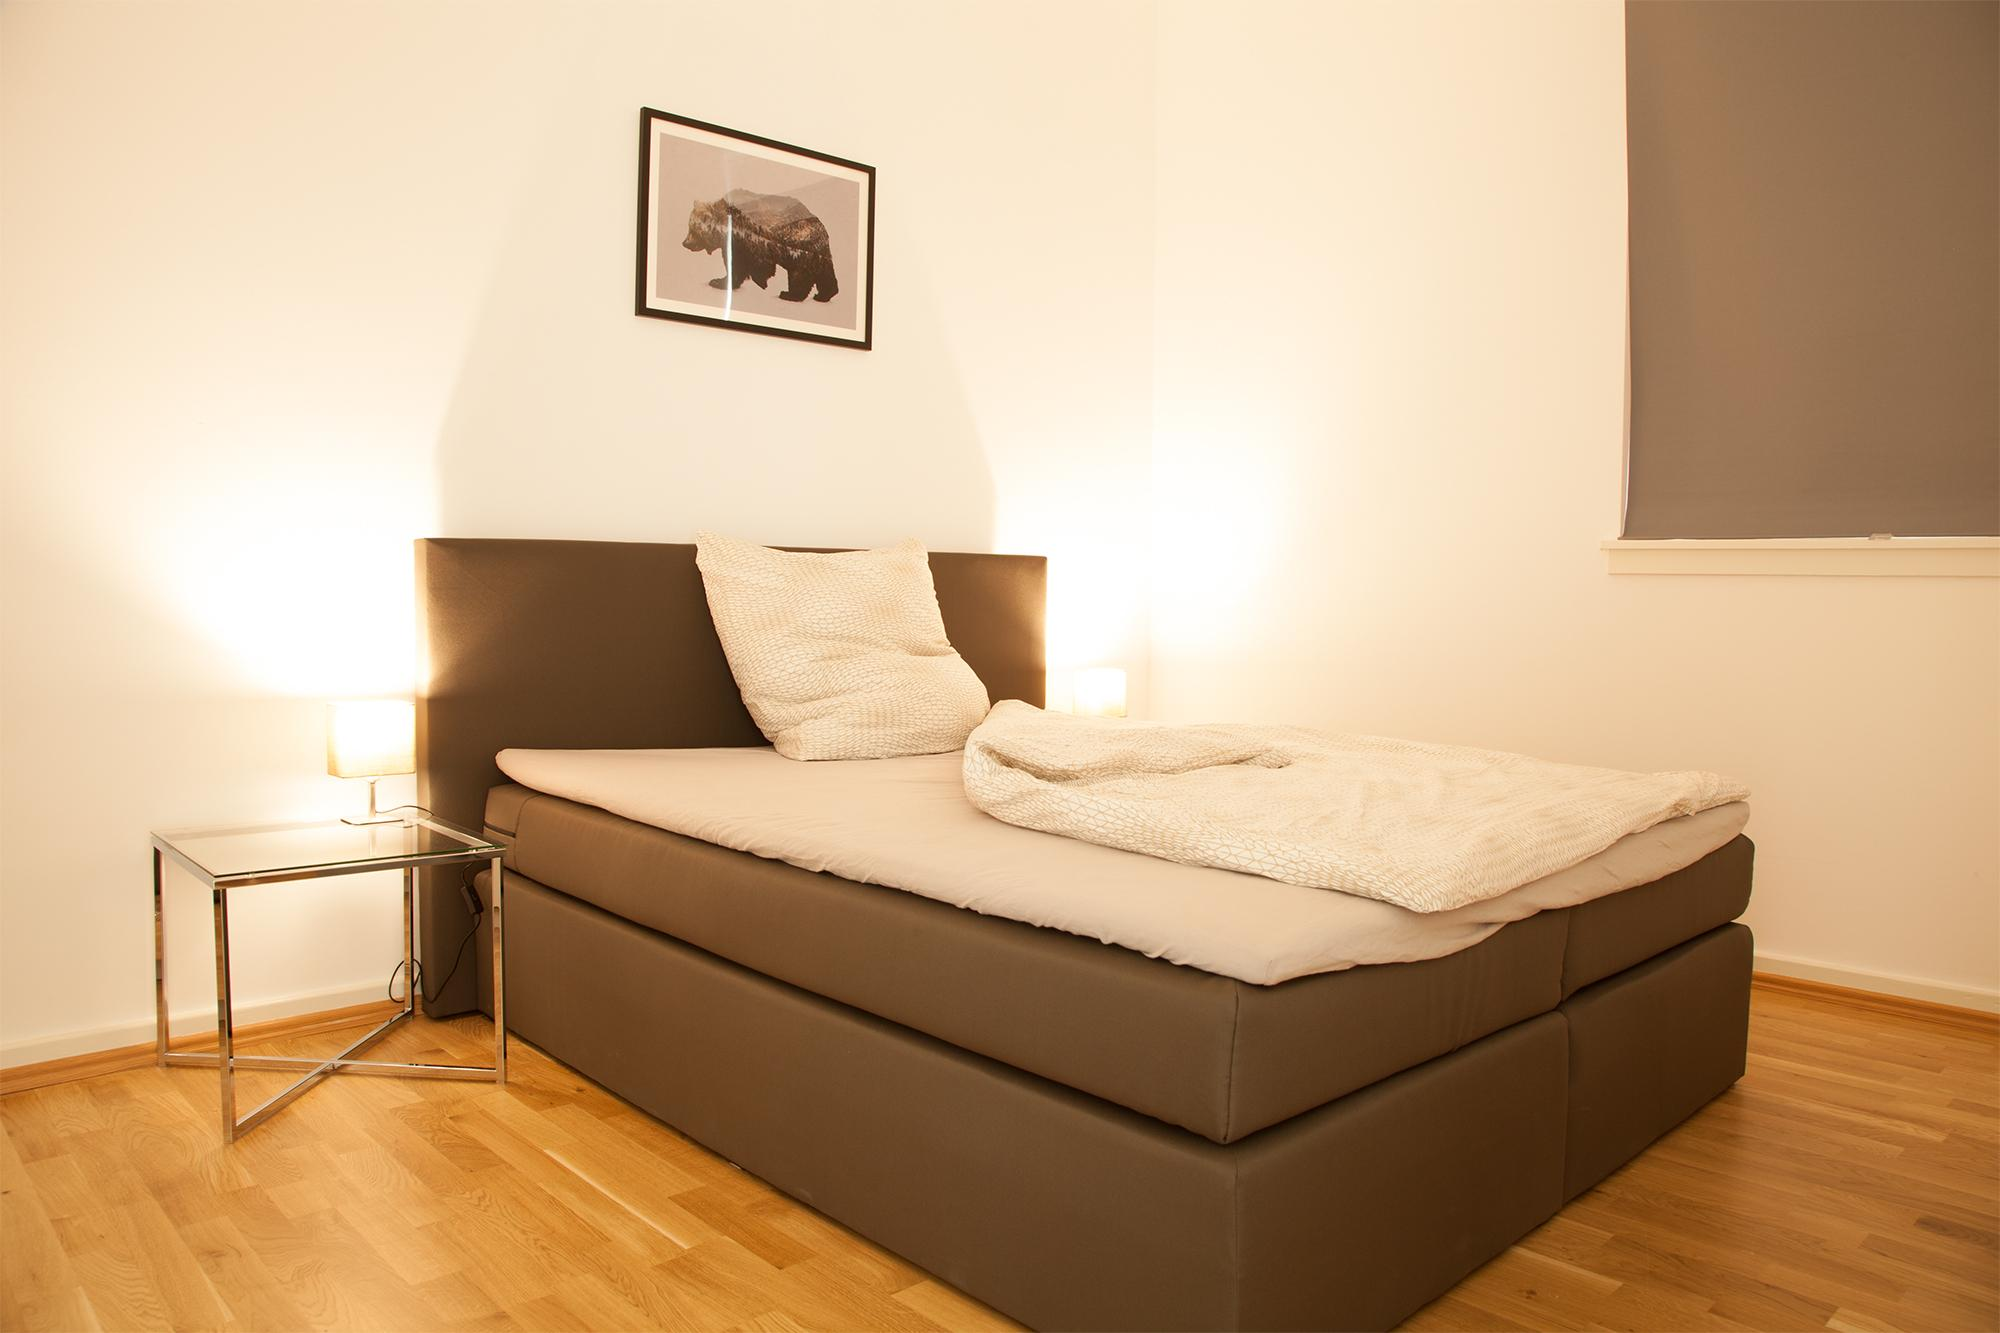 Schlafzimmer des Appartments #bett ©Roomhero